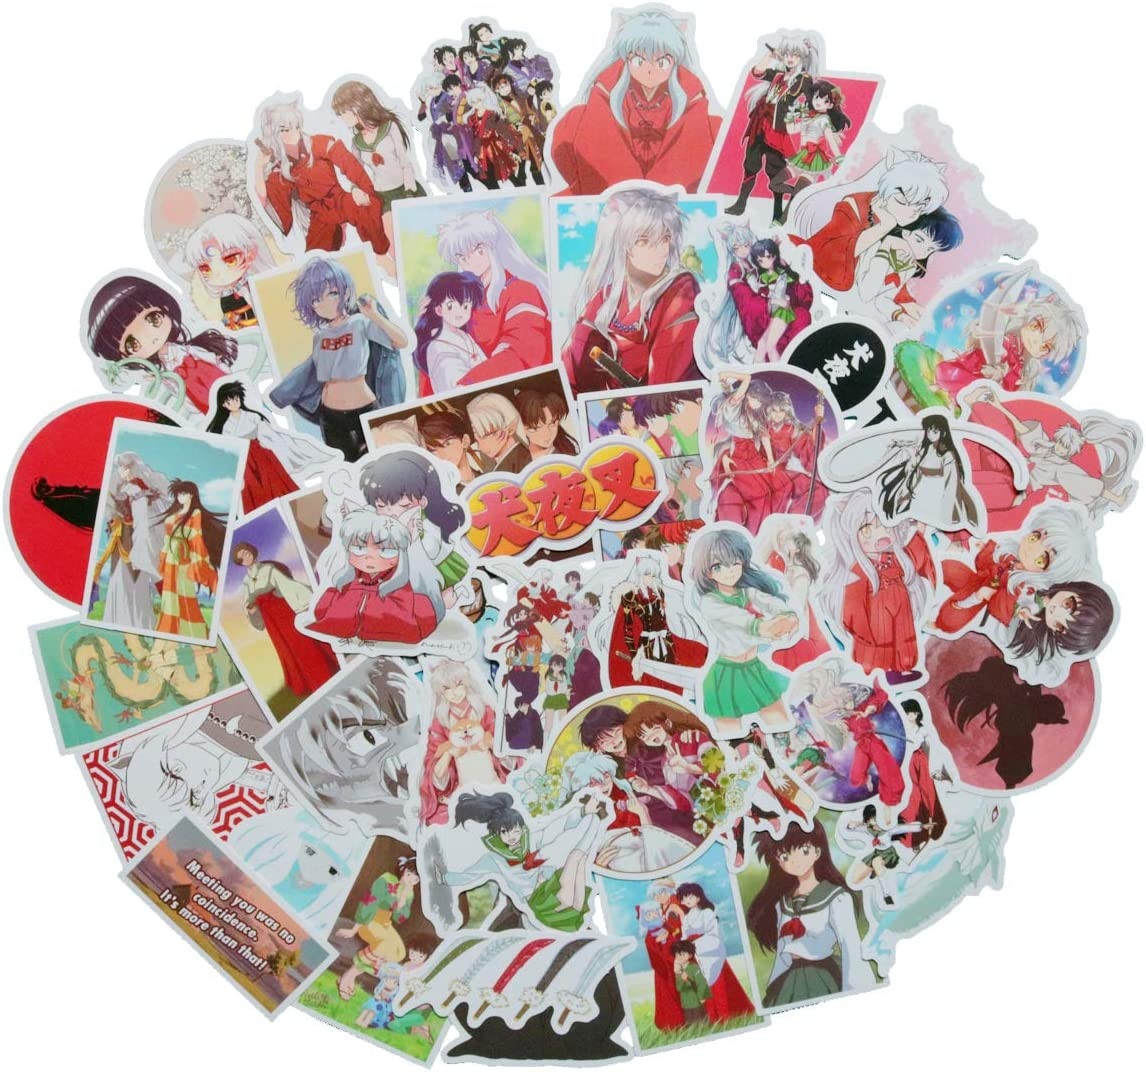 50PCS Inuyasha Japanese Anime Stickers Lovely Boy and Girl Sticker Laptop Computer Bedroom Wardrobe Car Skateboard Motorcycle Bicycle Mobile Phone Luggage Guitar DIY Decal (Inuyasha)